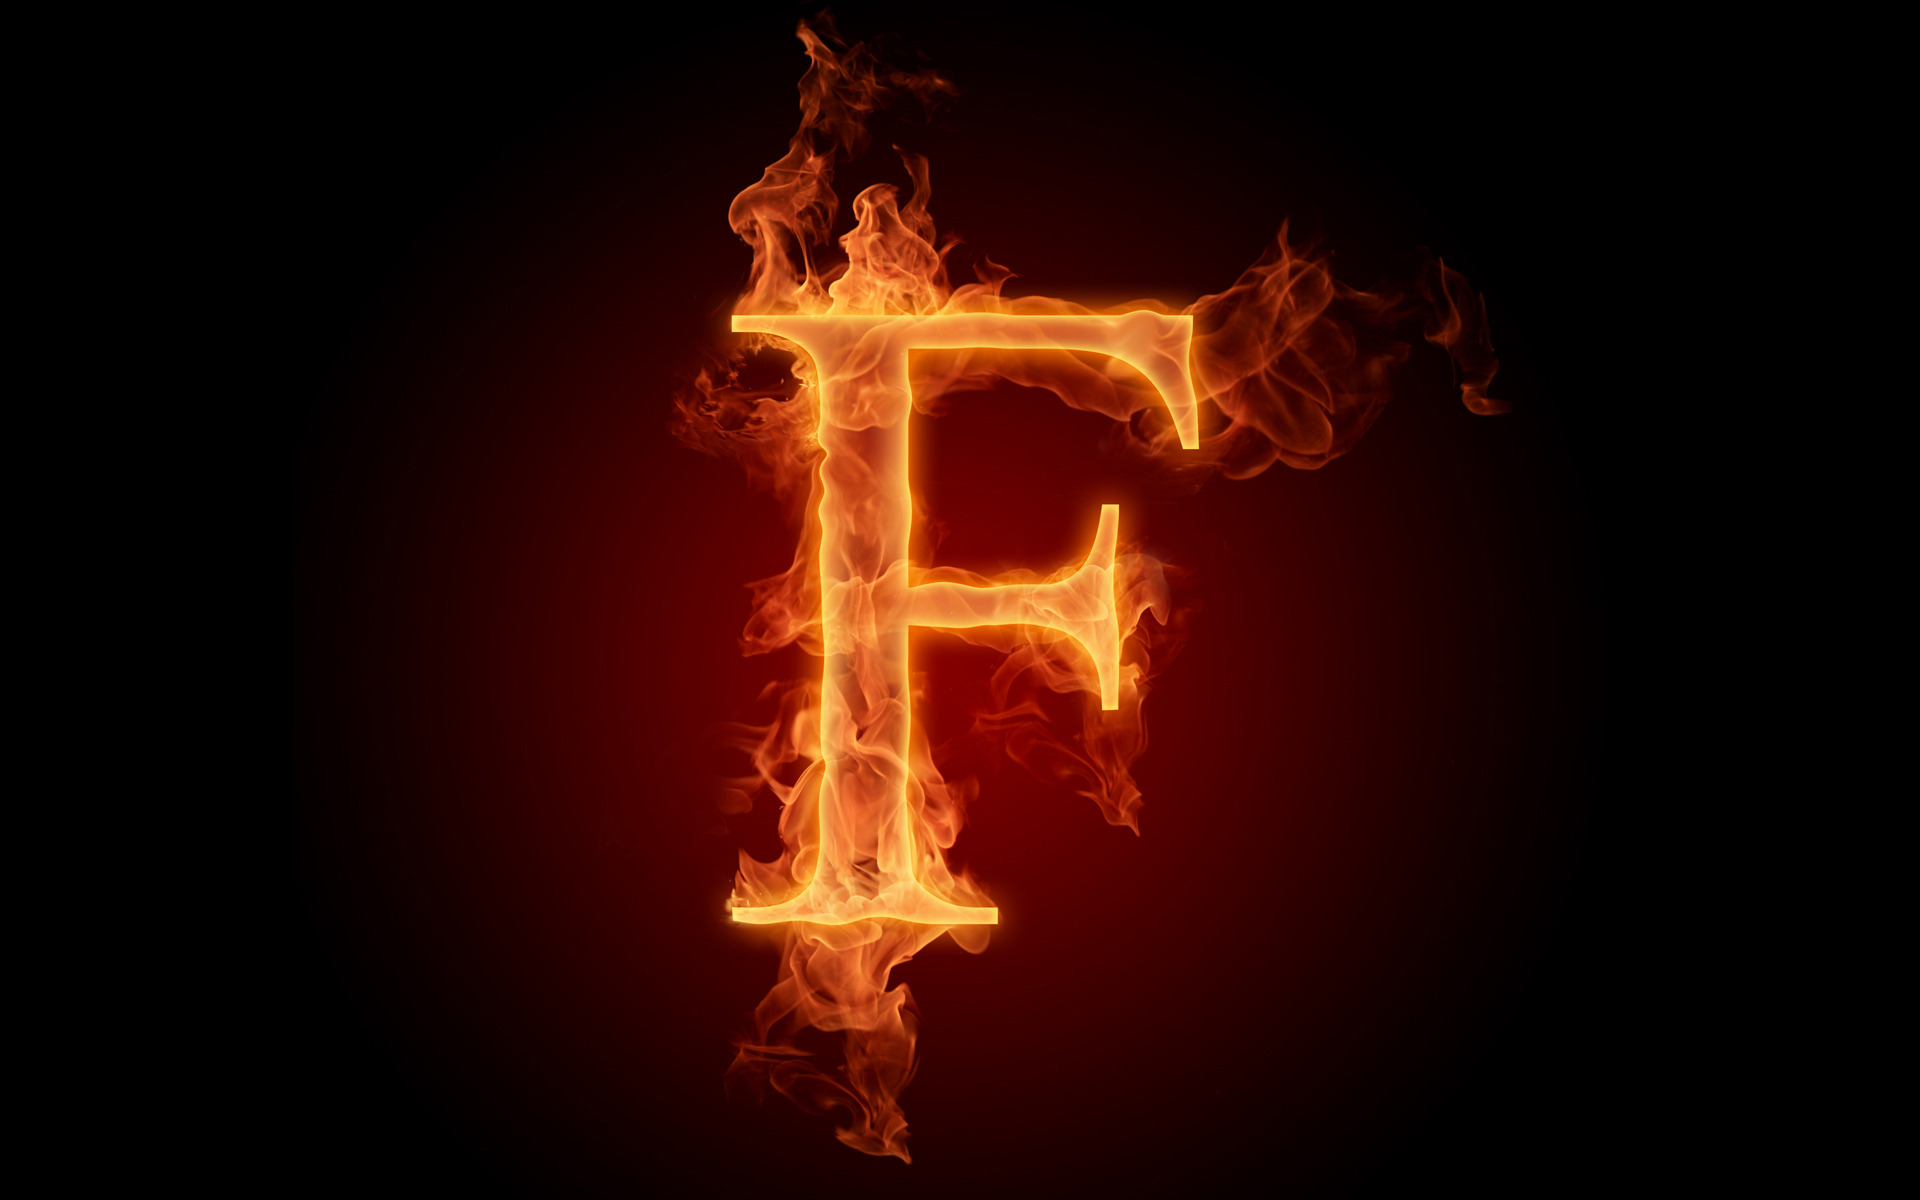 1000+ images about FIRE ALPHABET on Pinterest | Wood letters